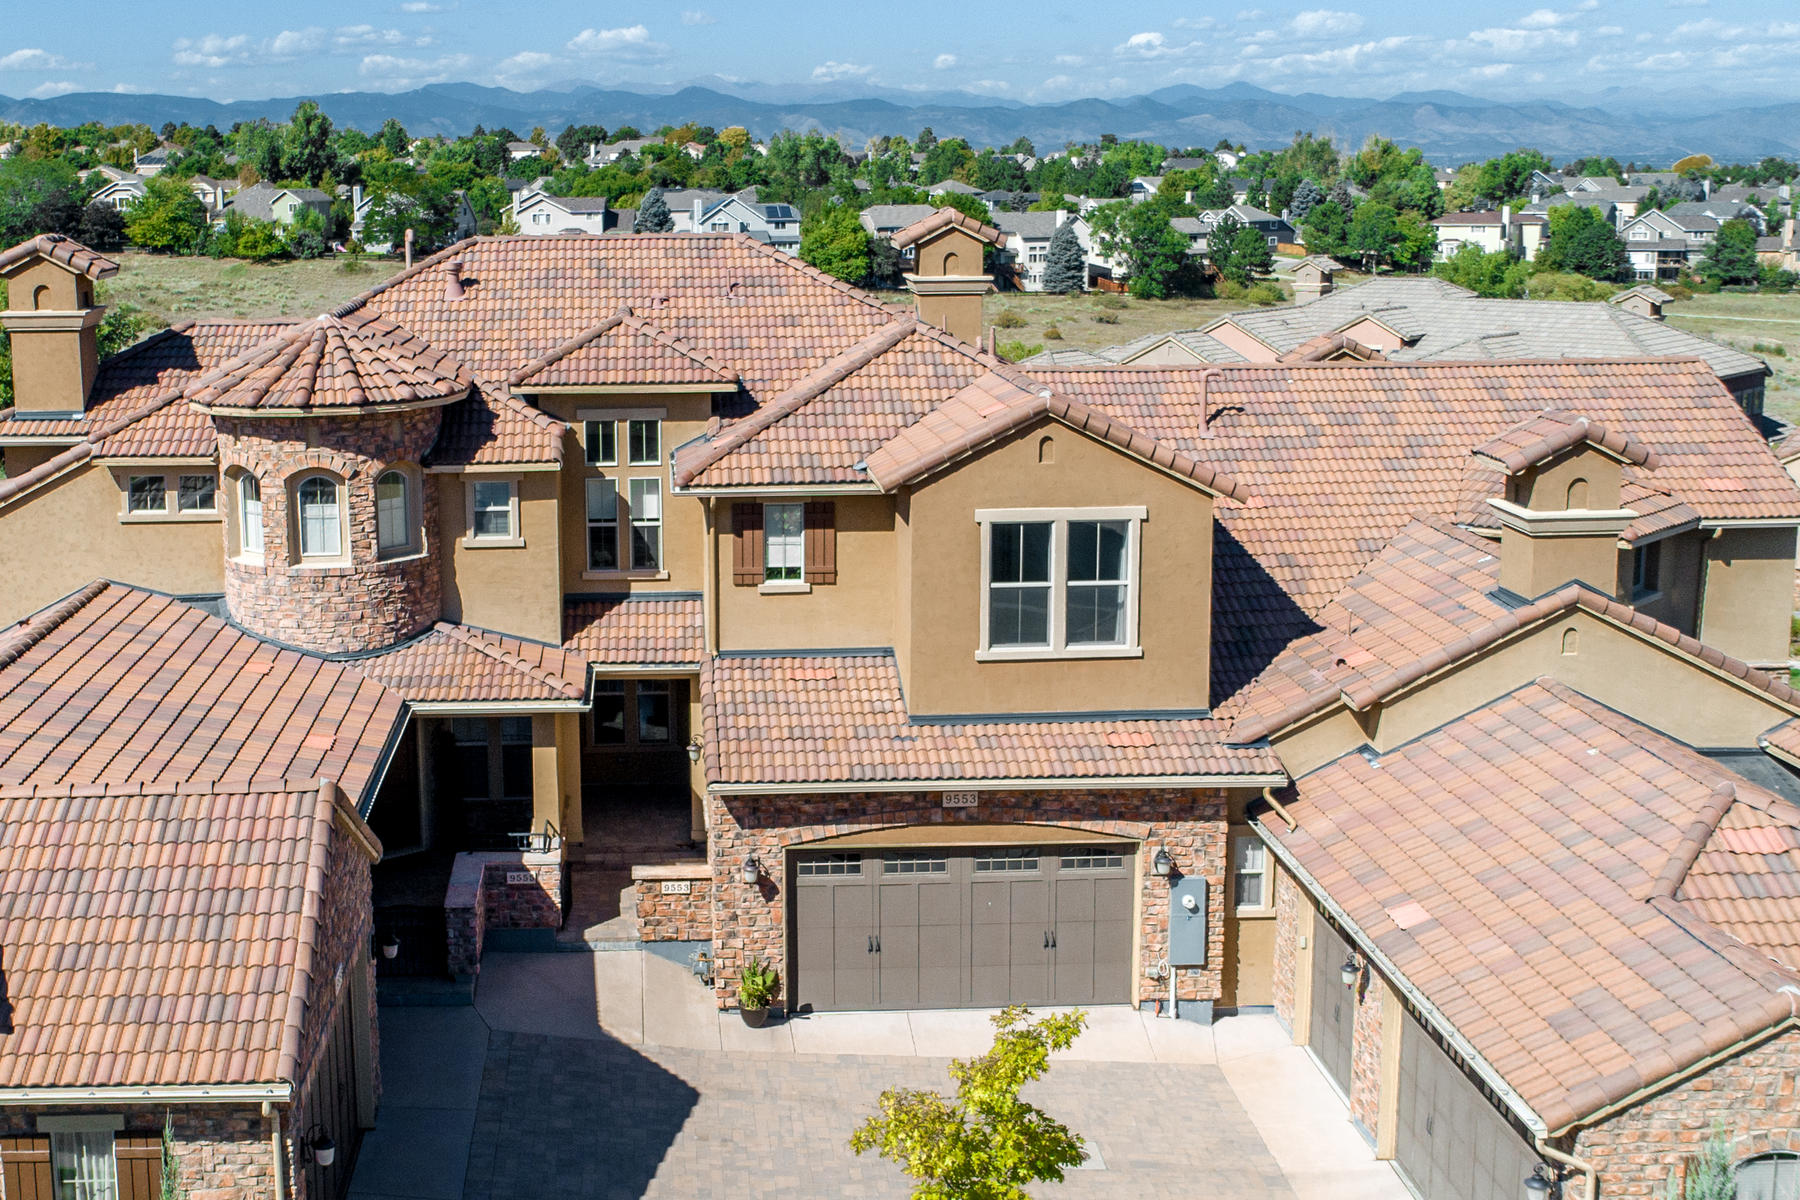 Property for Active at Extensively Upgraded Townhome Enjoys a Contemporary Flair 9553 Firenze Way Highlands Ranch, Colorado 80126 United States